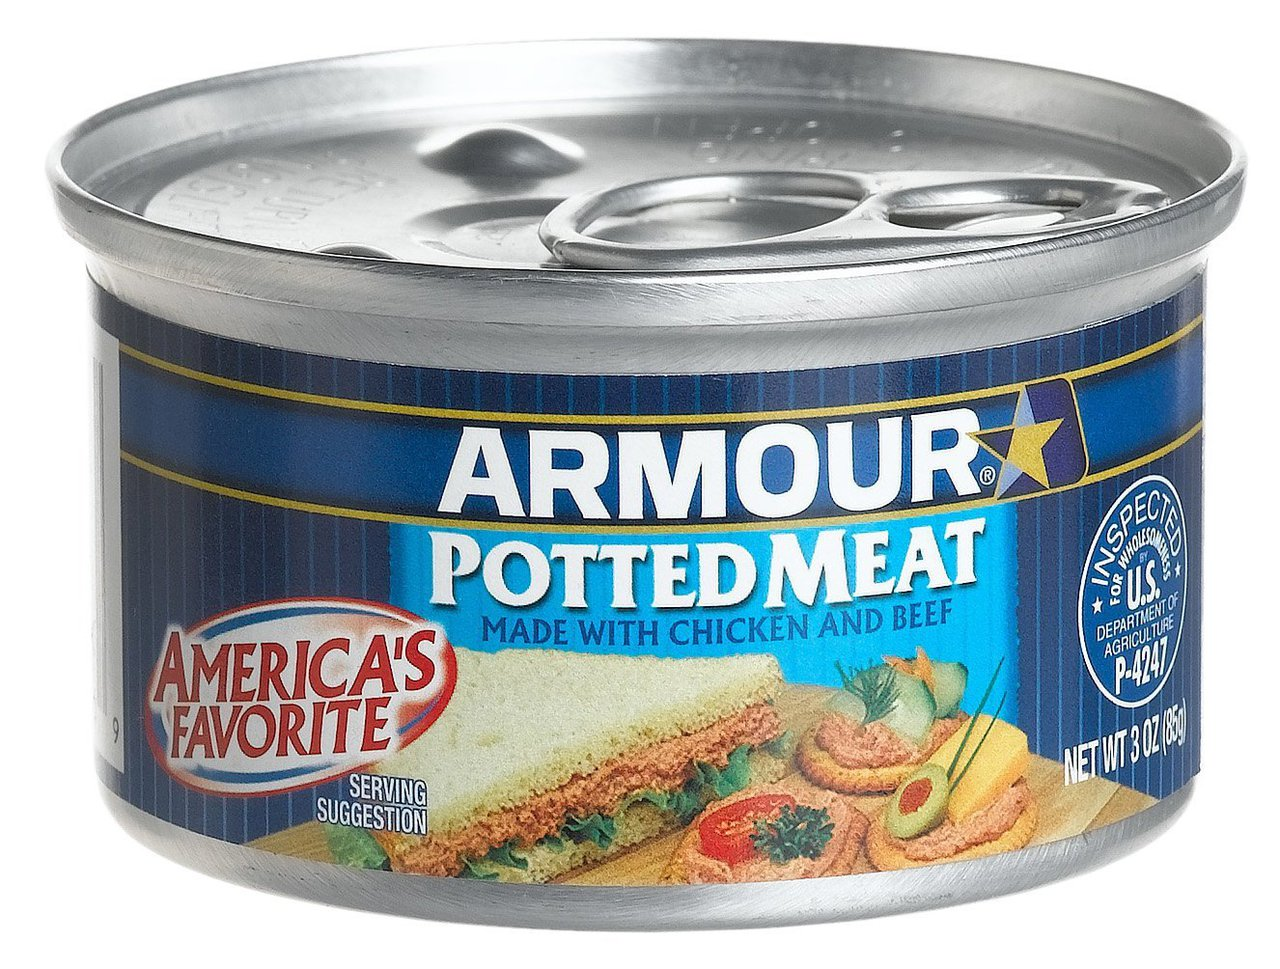 48 PACKS : Armour Star Potted Meat, Chicken and Pork, 3 Ounce by